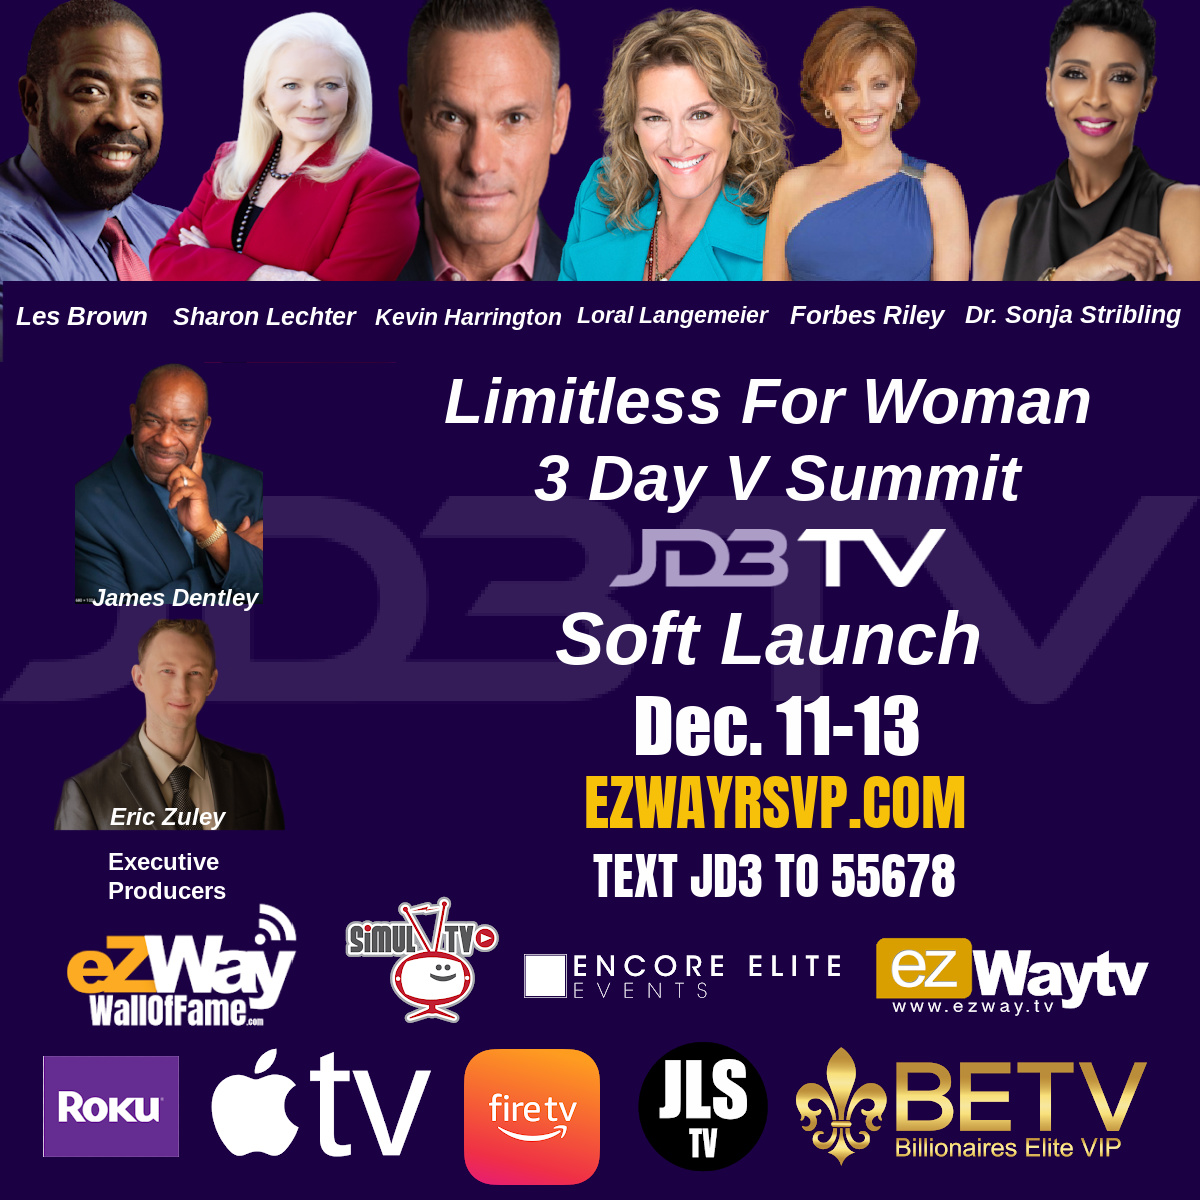 Limitless For Women 3 Days Summit Soft Launch of JD3TV